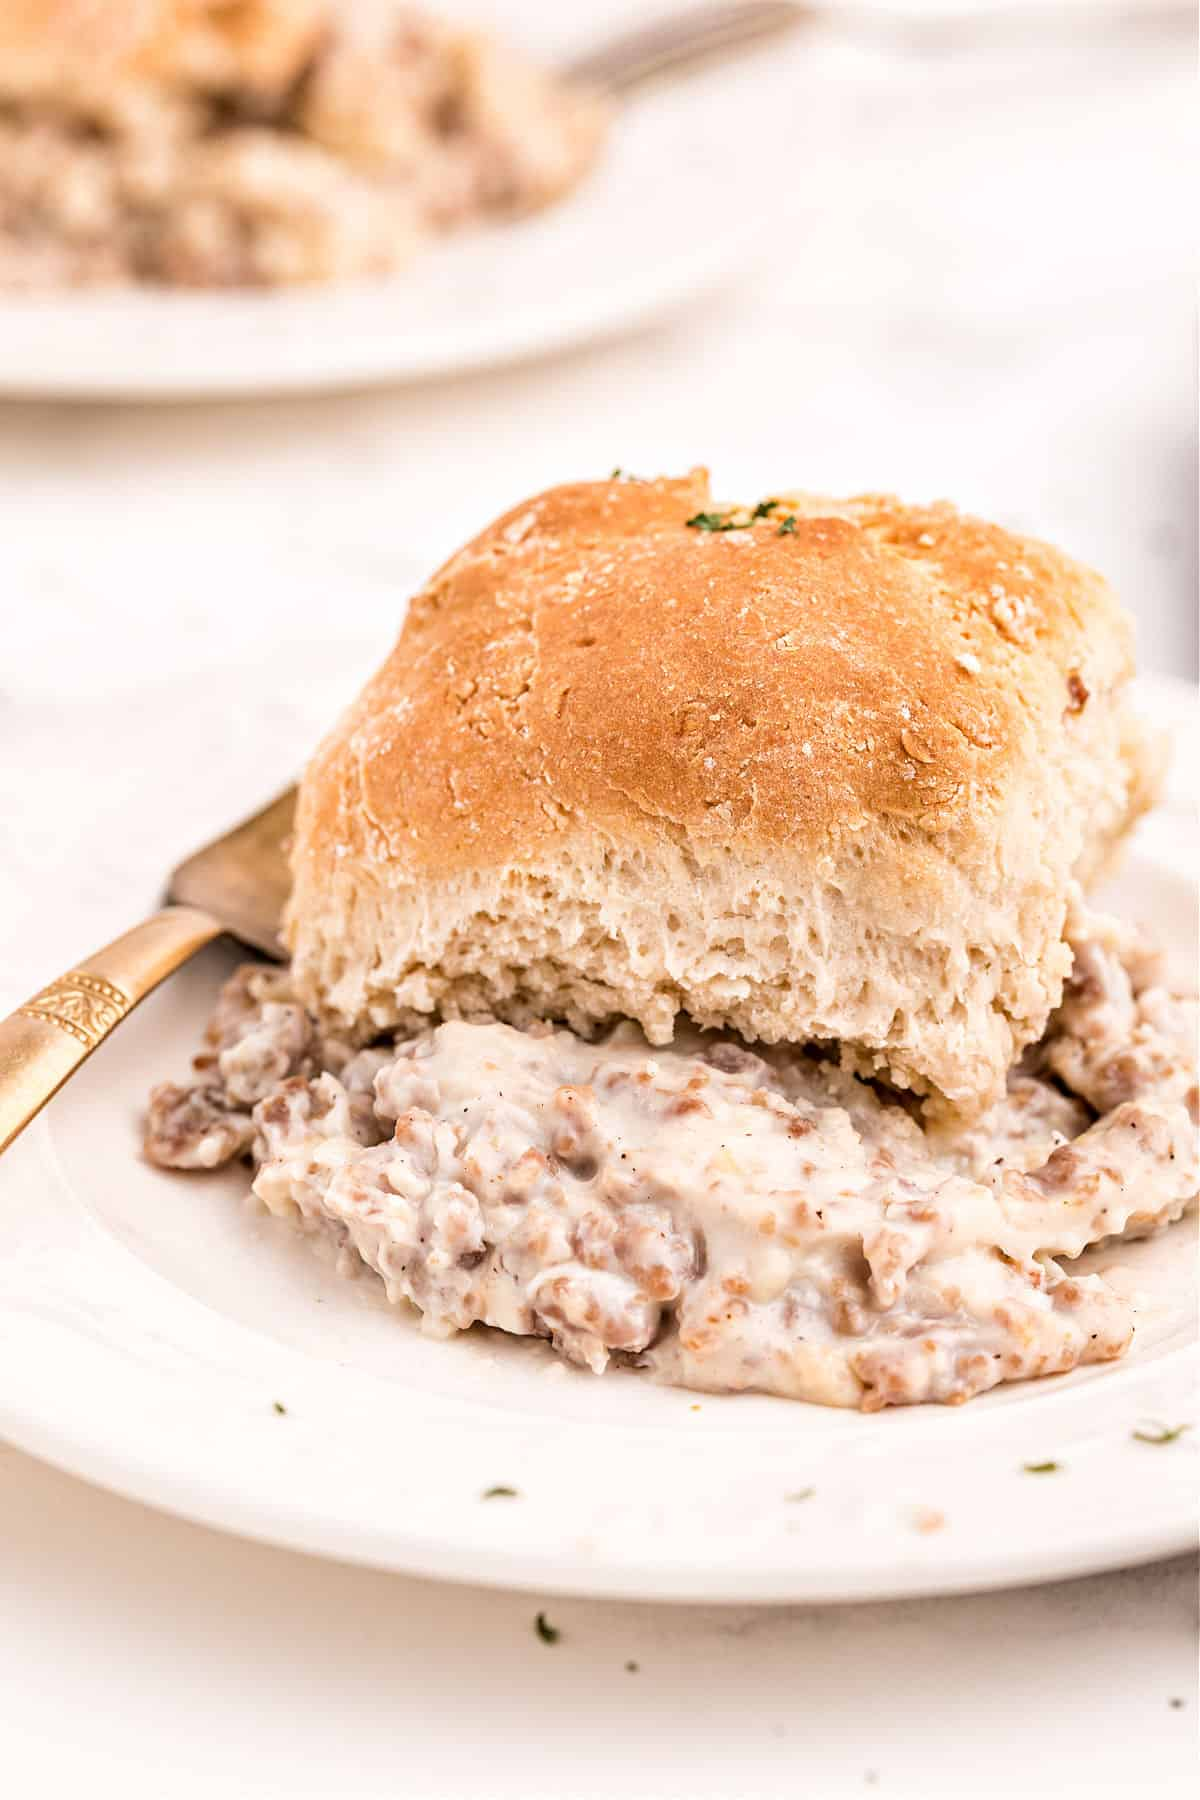 Sausage and gravy with biscuit served on a white plate.